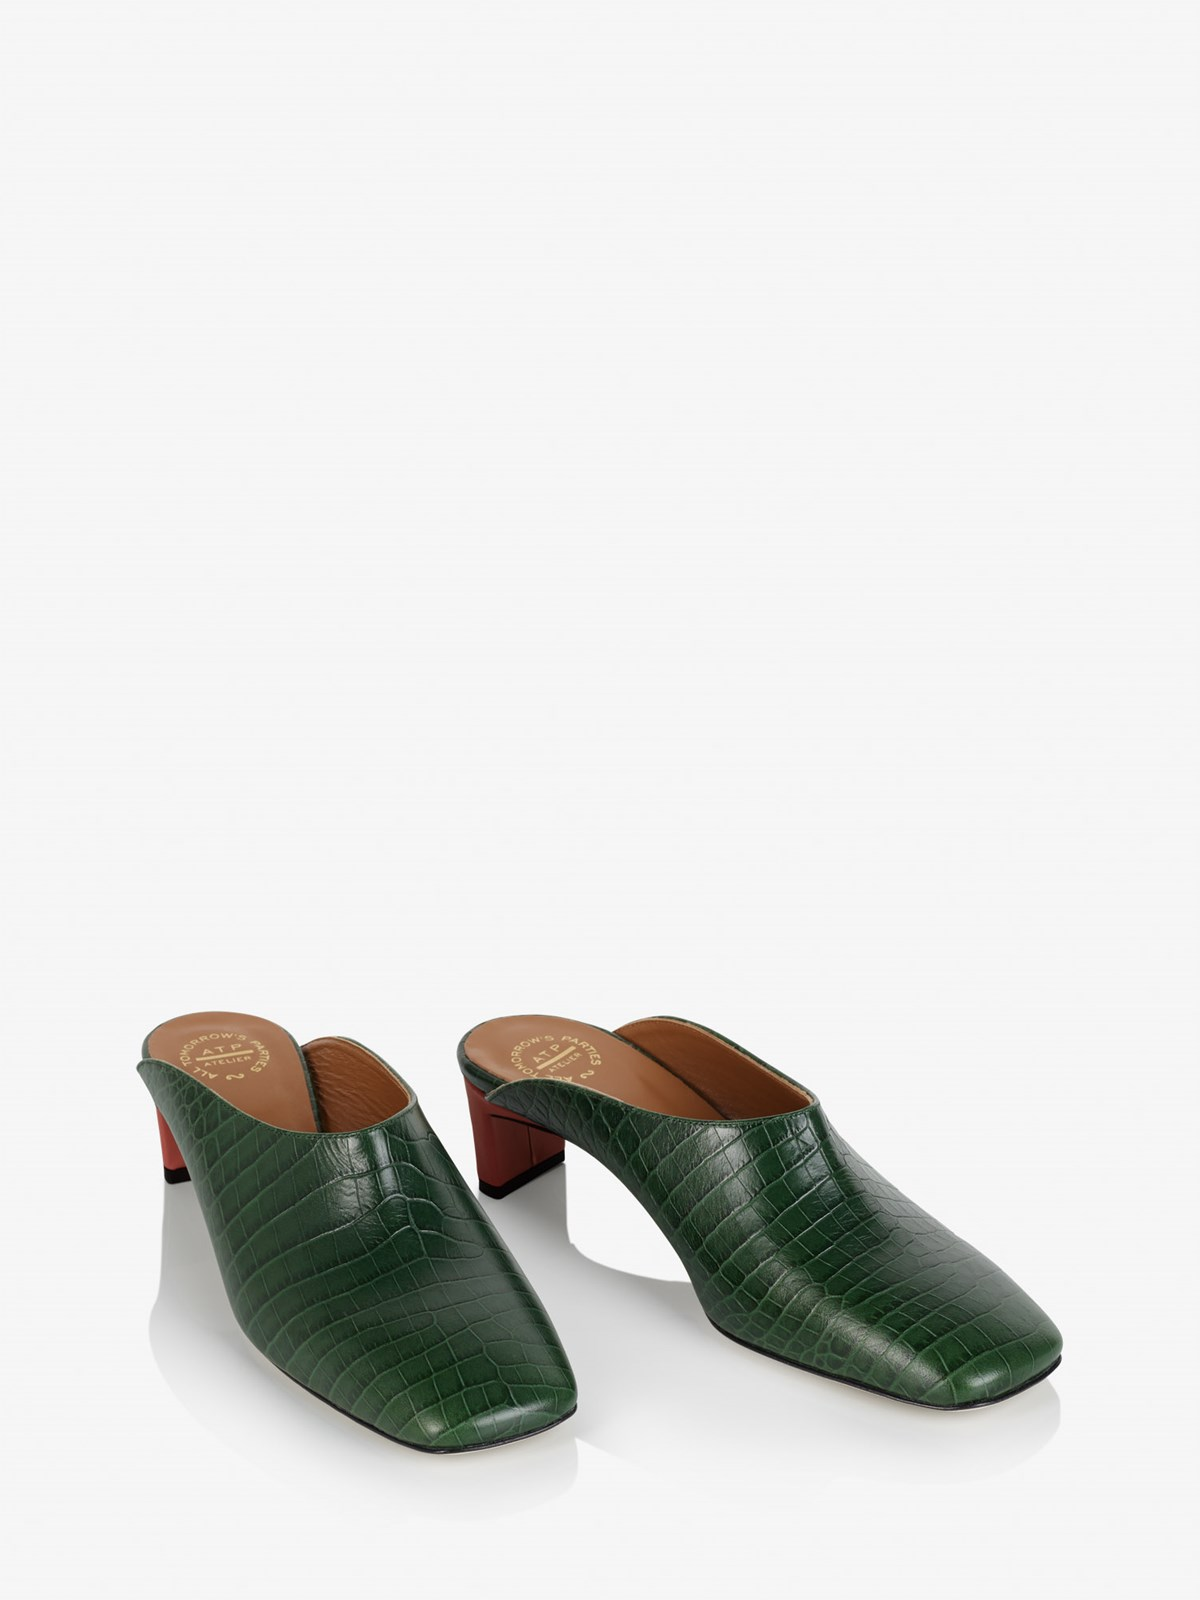 Printed Croco Tasso Forrest Green Printed Croco